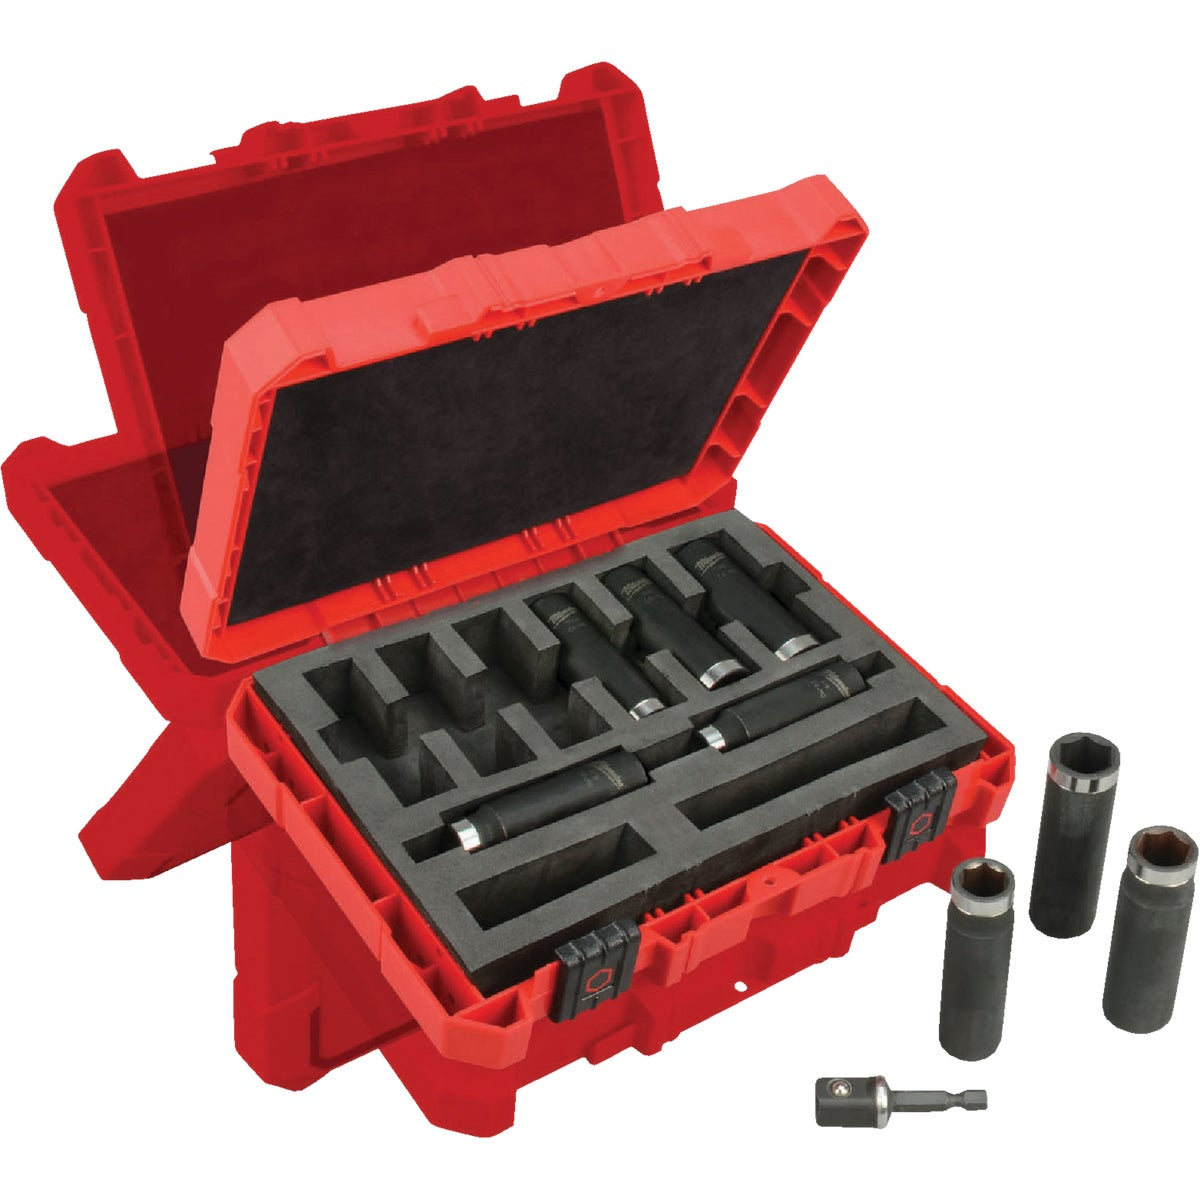 "9PC 1/2"" IMP SOCKET SET"